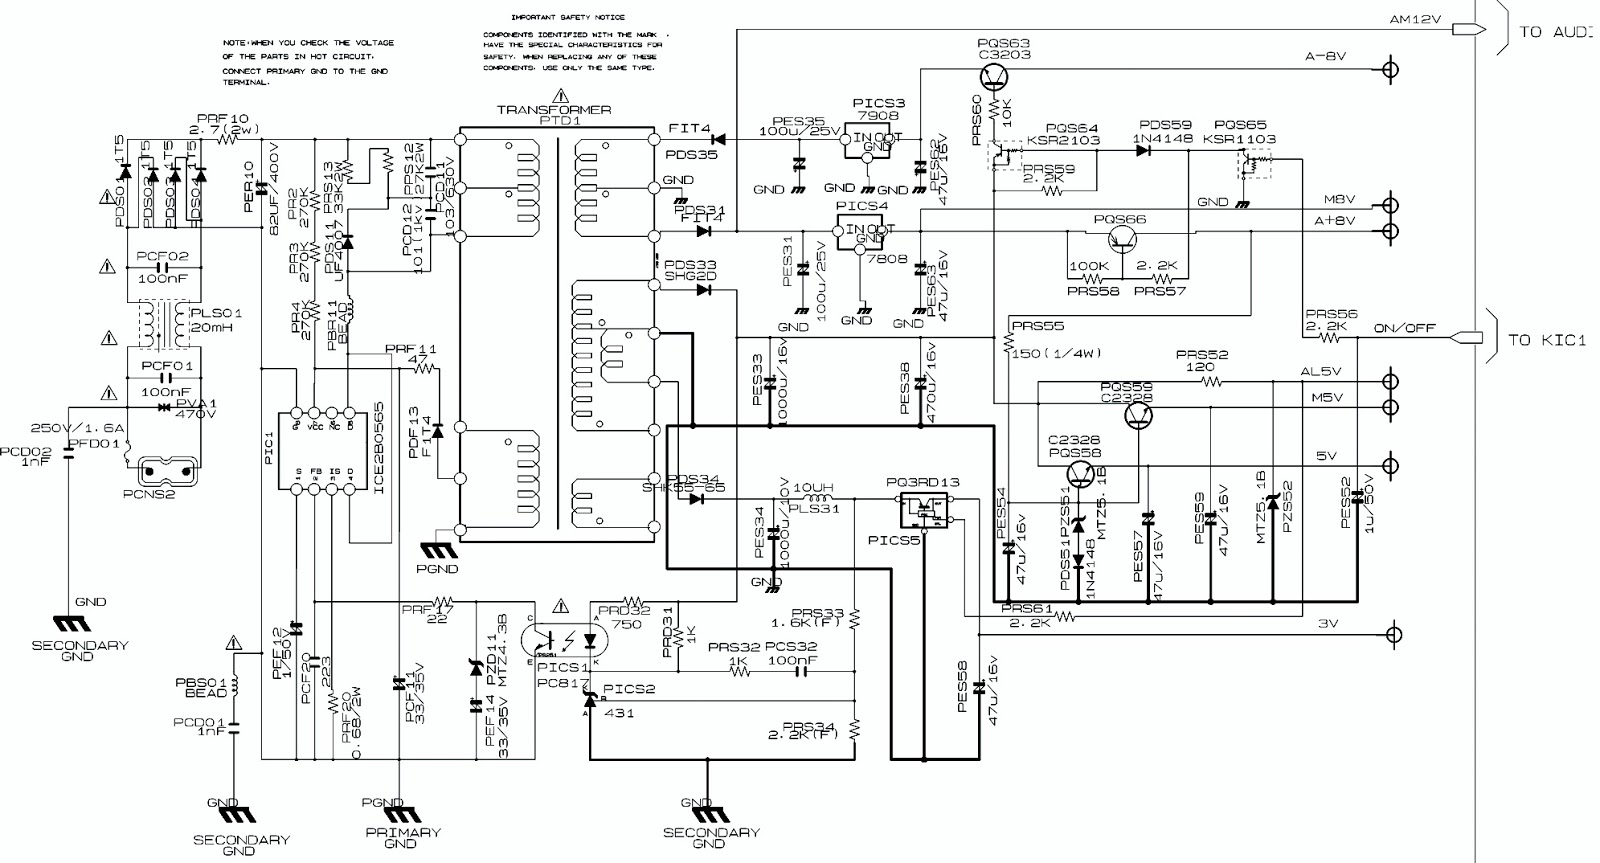 medium resolution of  new from this samsung tv schematic diagram circuit diagrams and download service repair manuals and schematic diagrams xmid service manual dvd